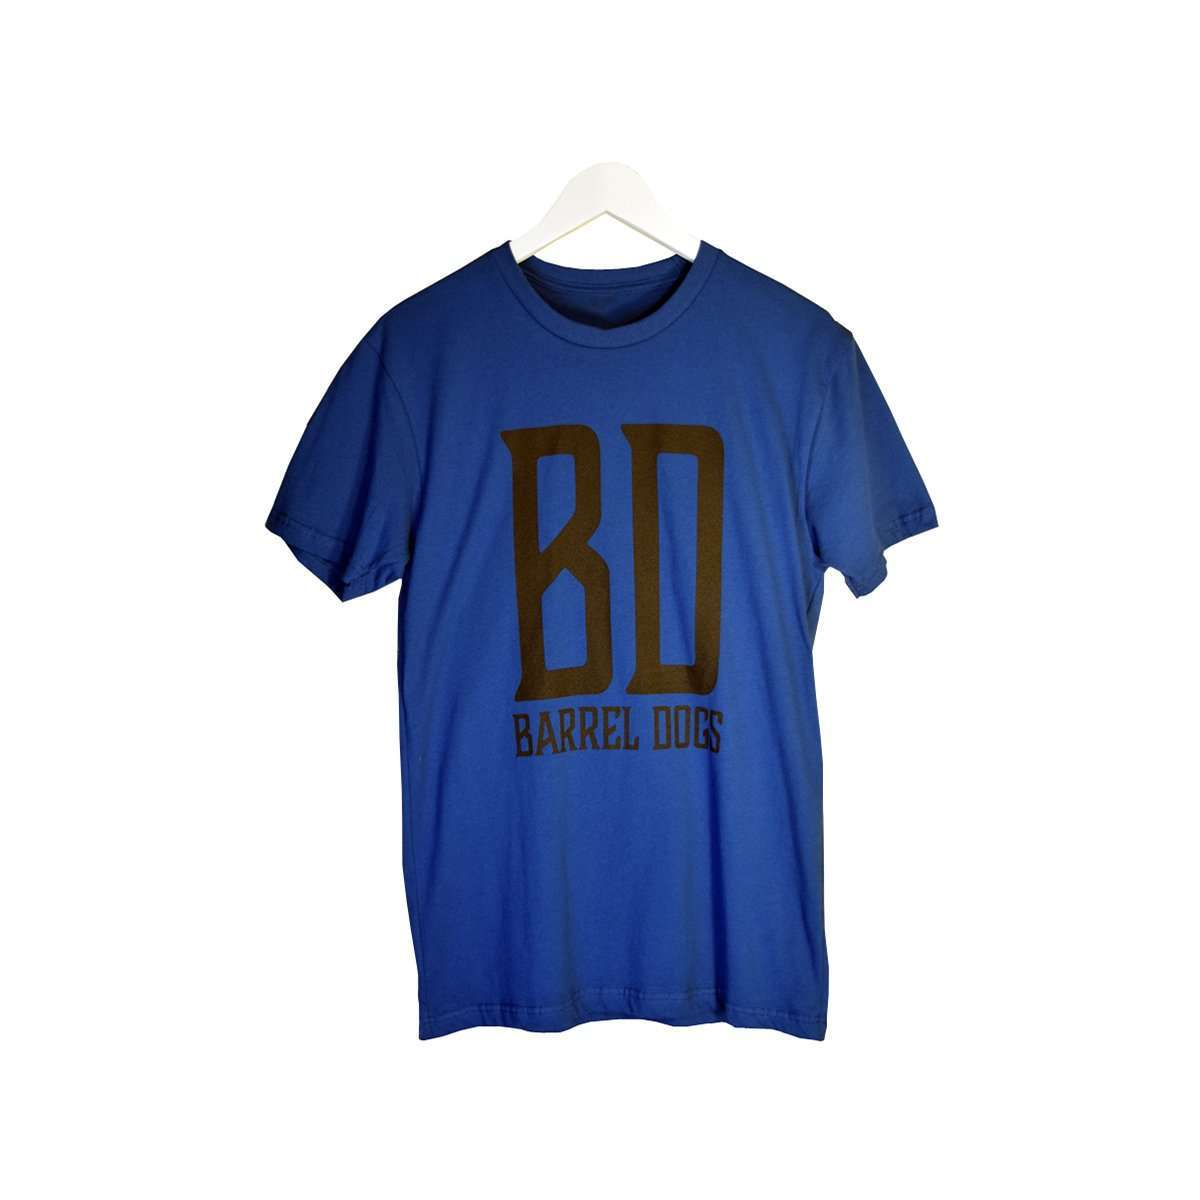 BD RU With Me? Men's Tee - Barrel Dogs